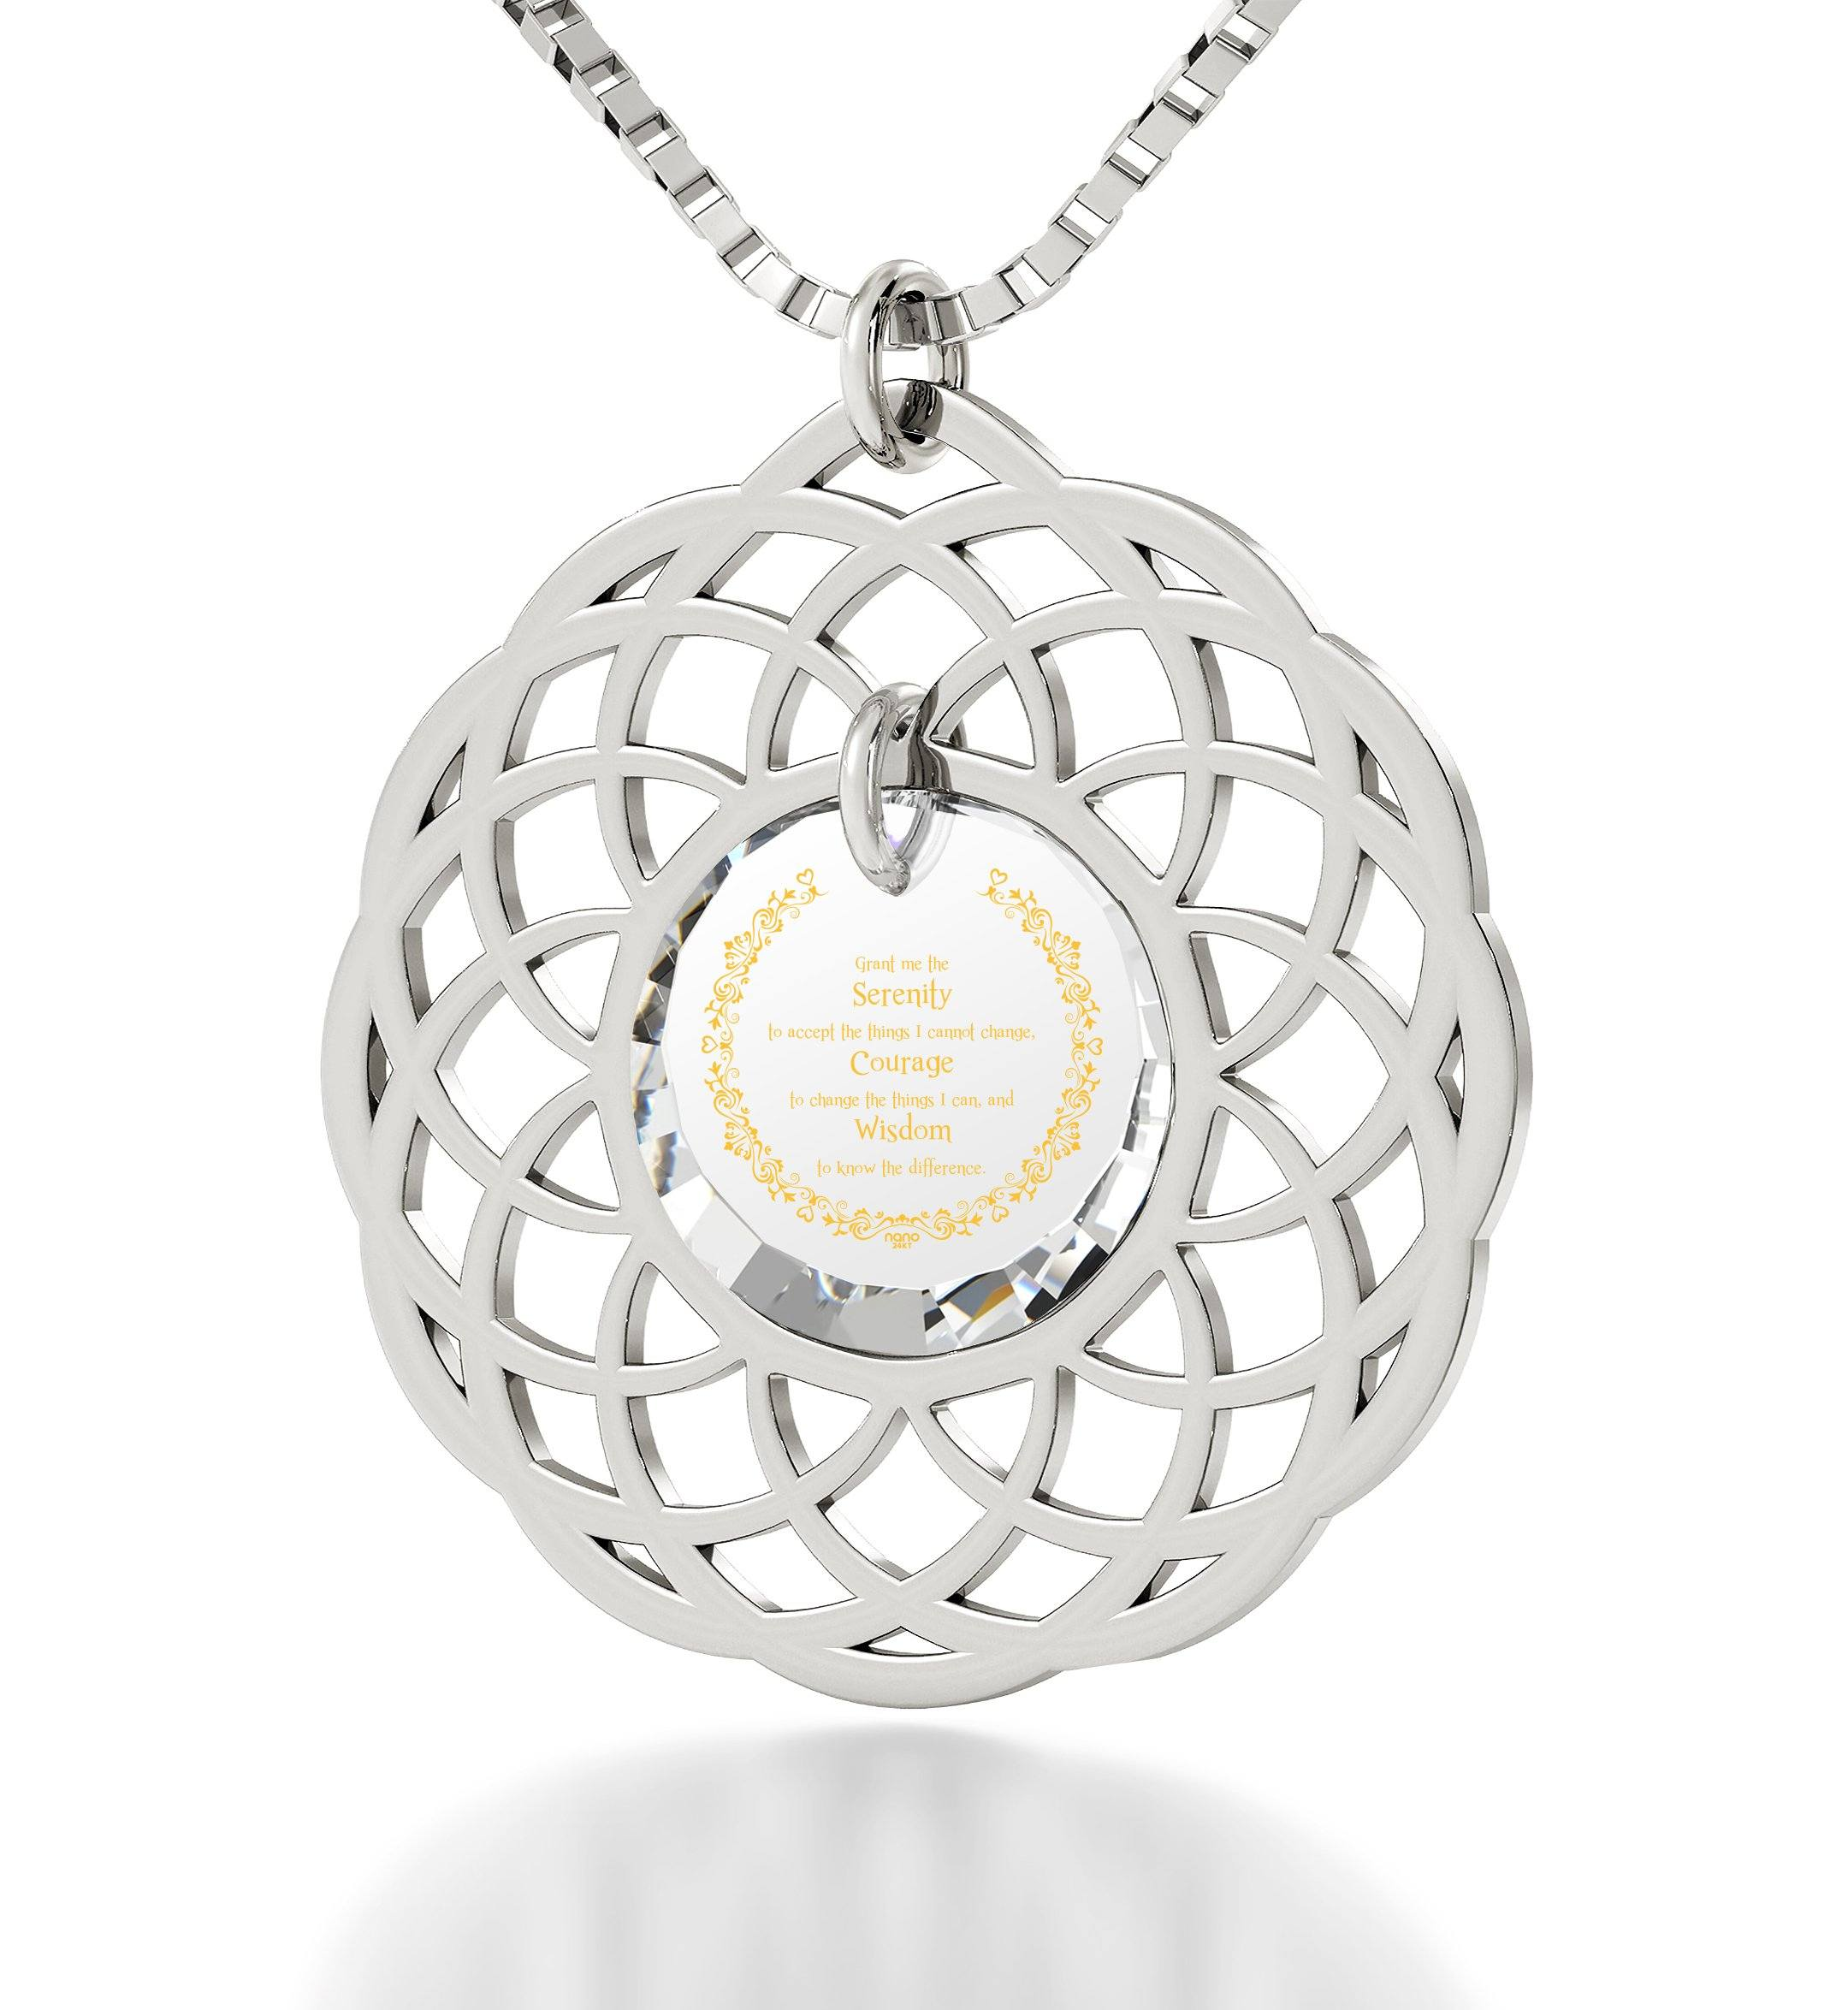 product whimsy serenity better index prayer shop necklace gift